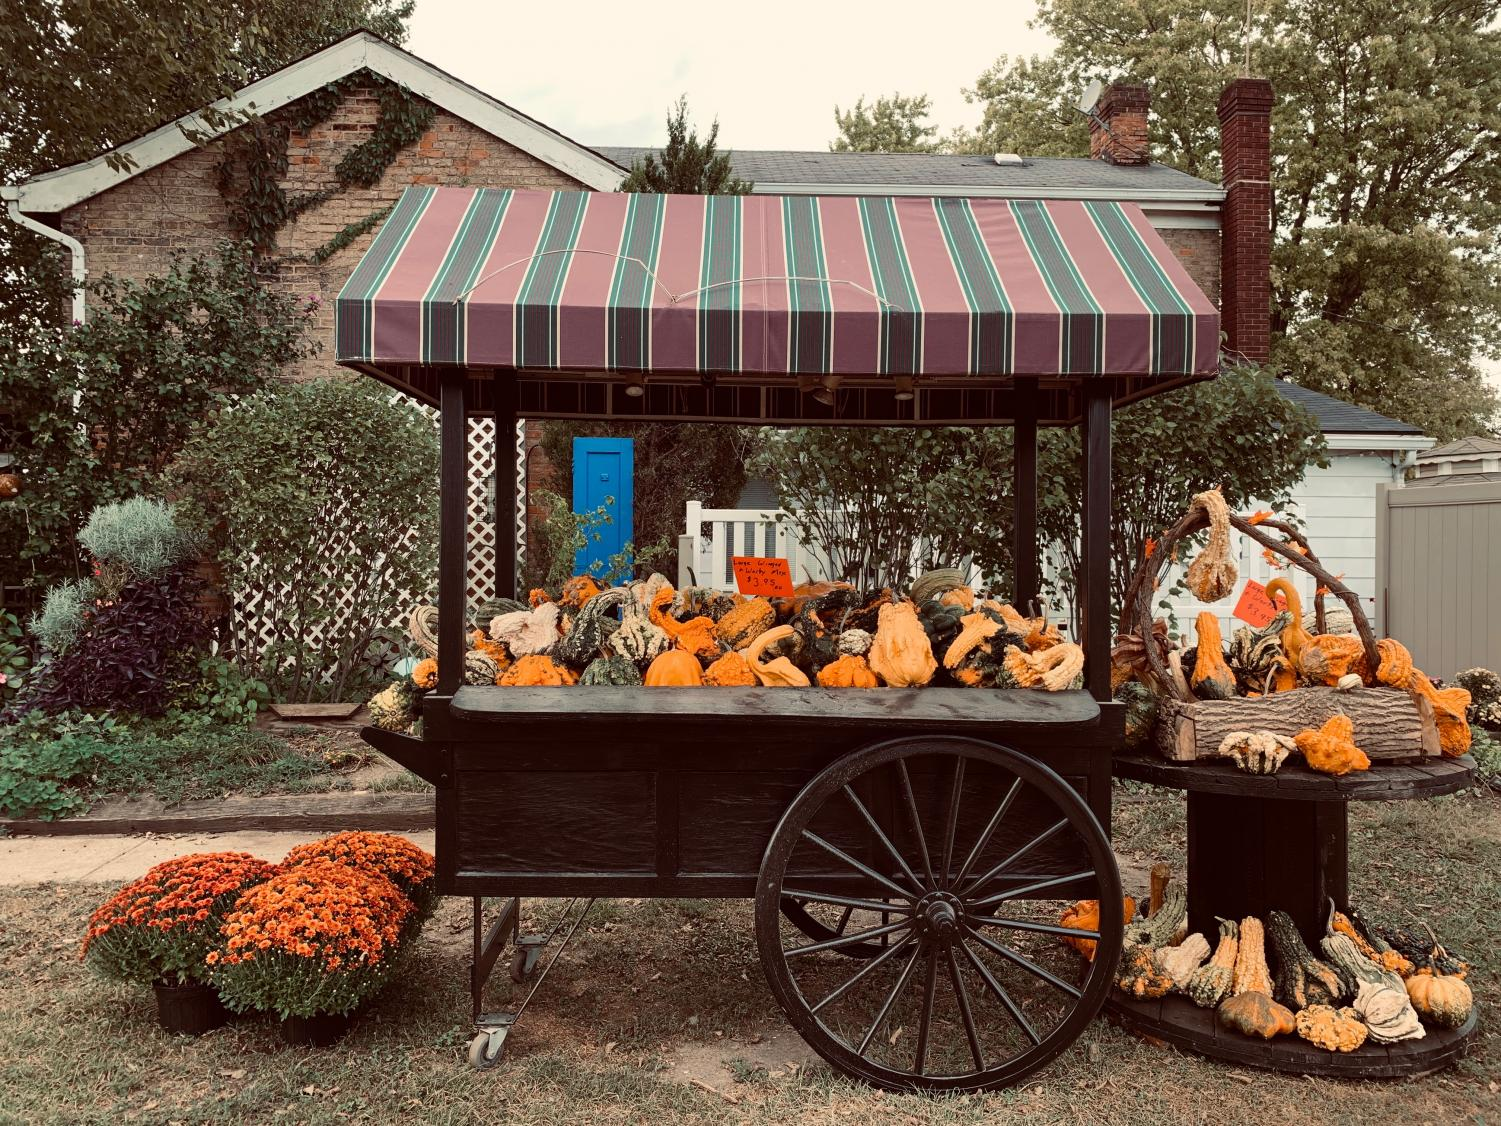 Festive display of gourds at Brown's Family Farm Market.